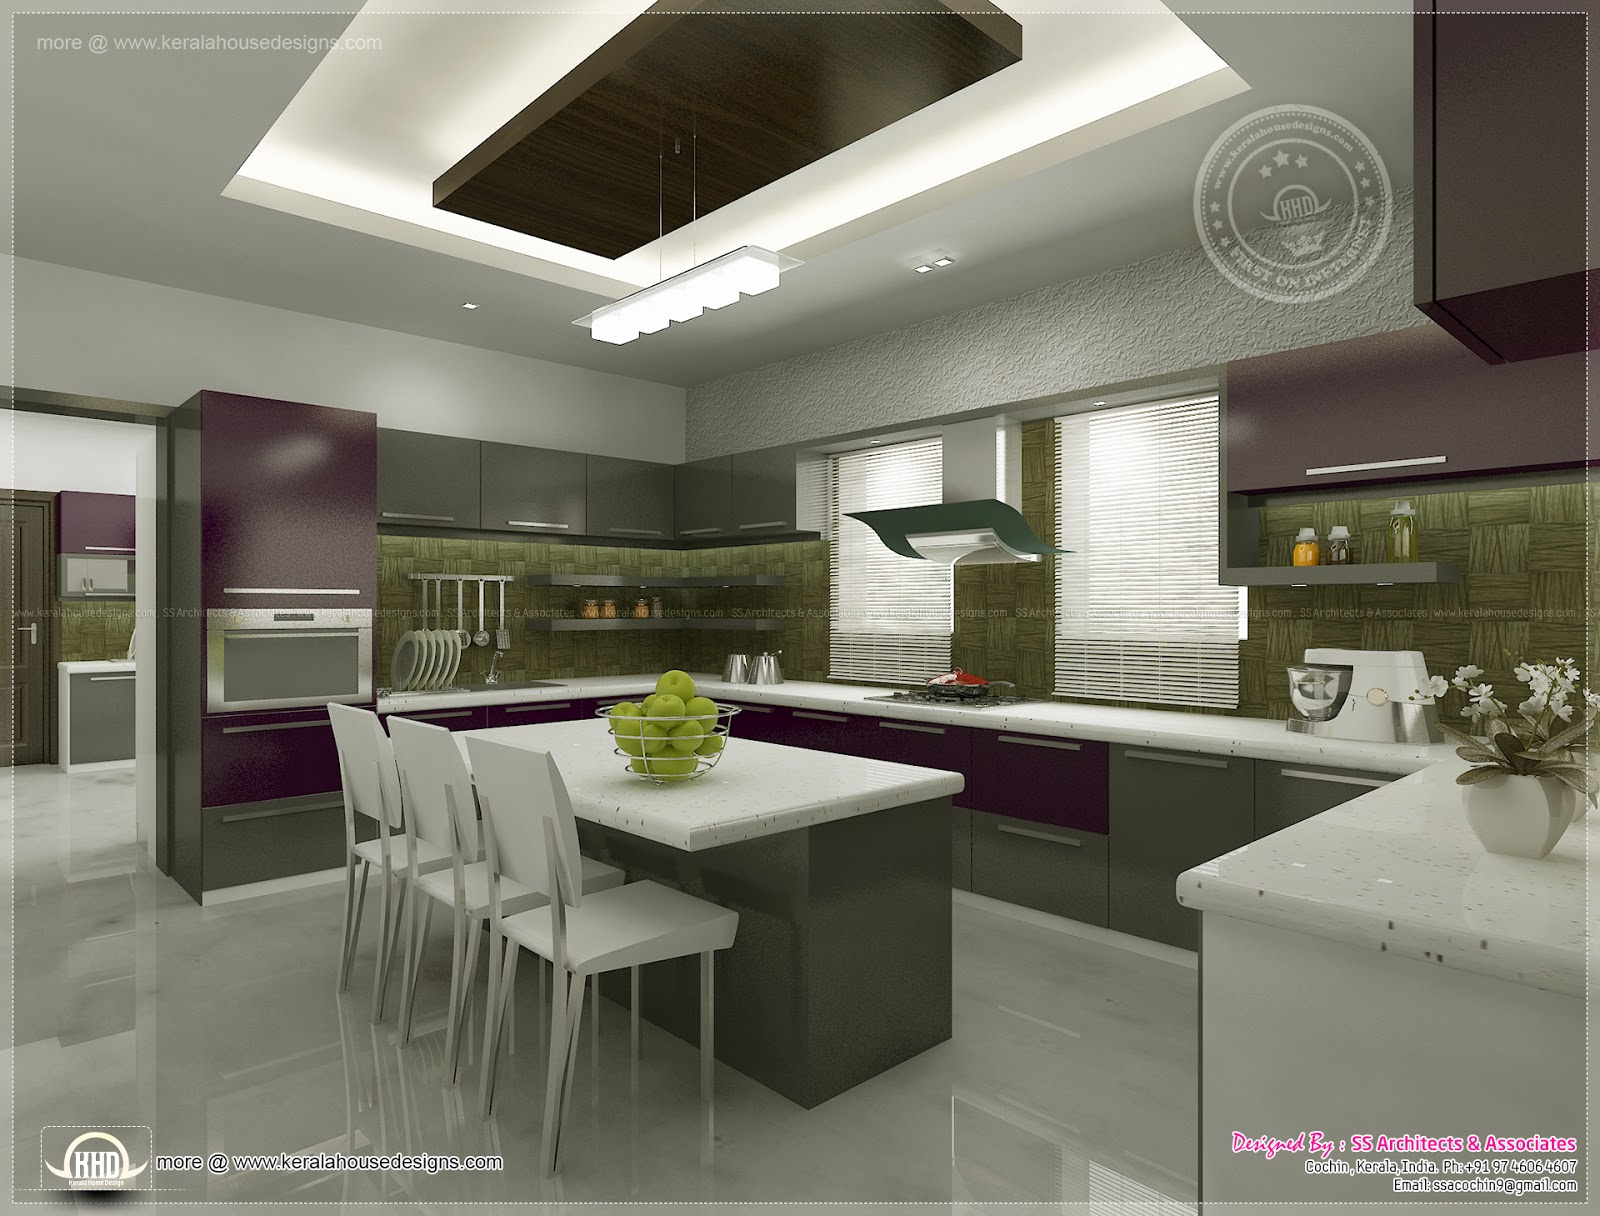 Kitchen interior views by SS Architects, Cochin | House ...